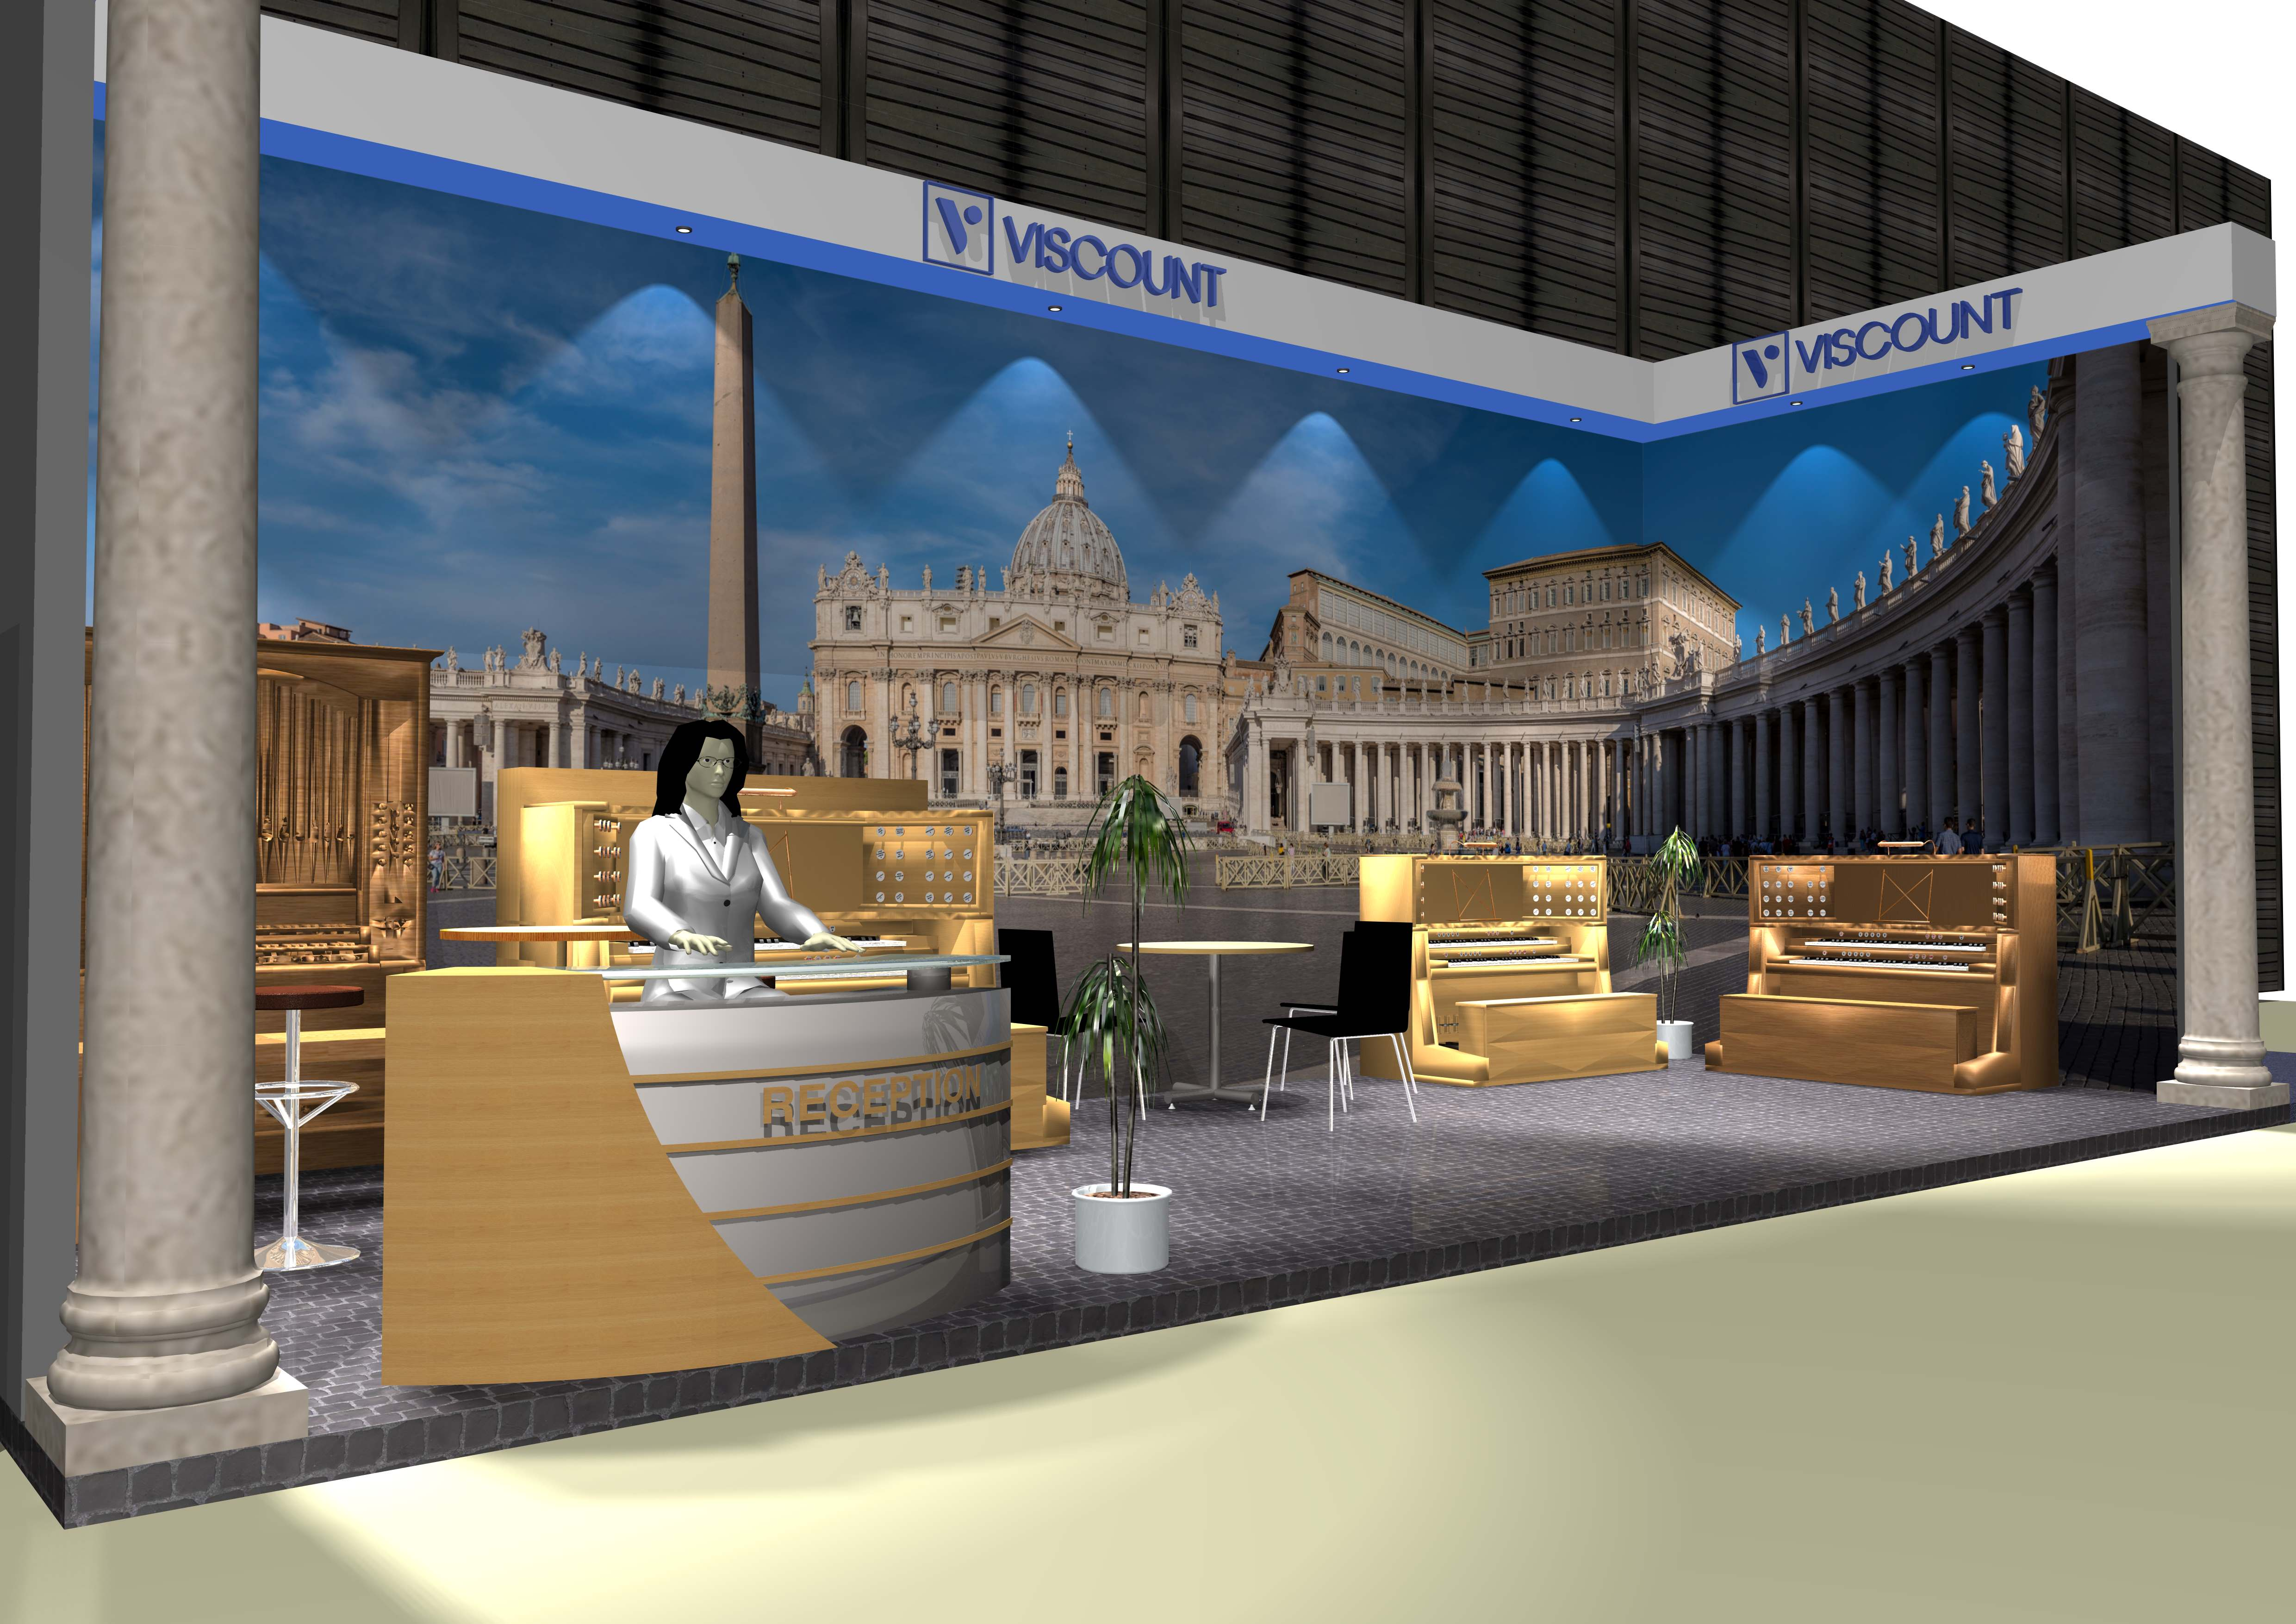 News - Booth rendering for Music China 2019